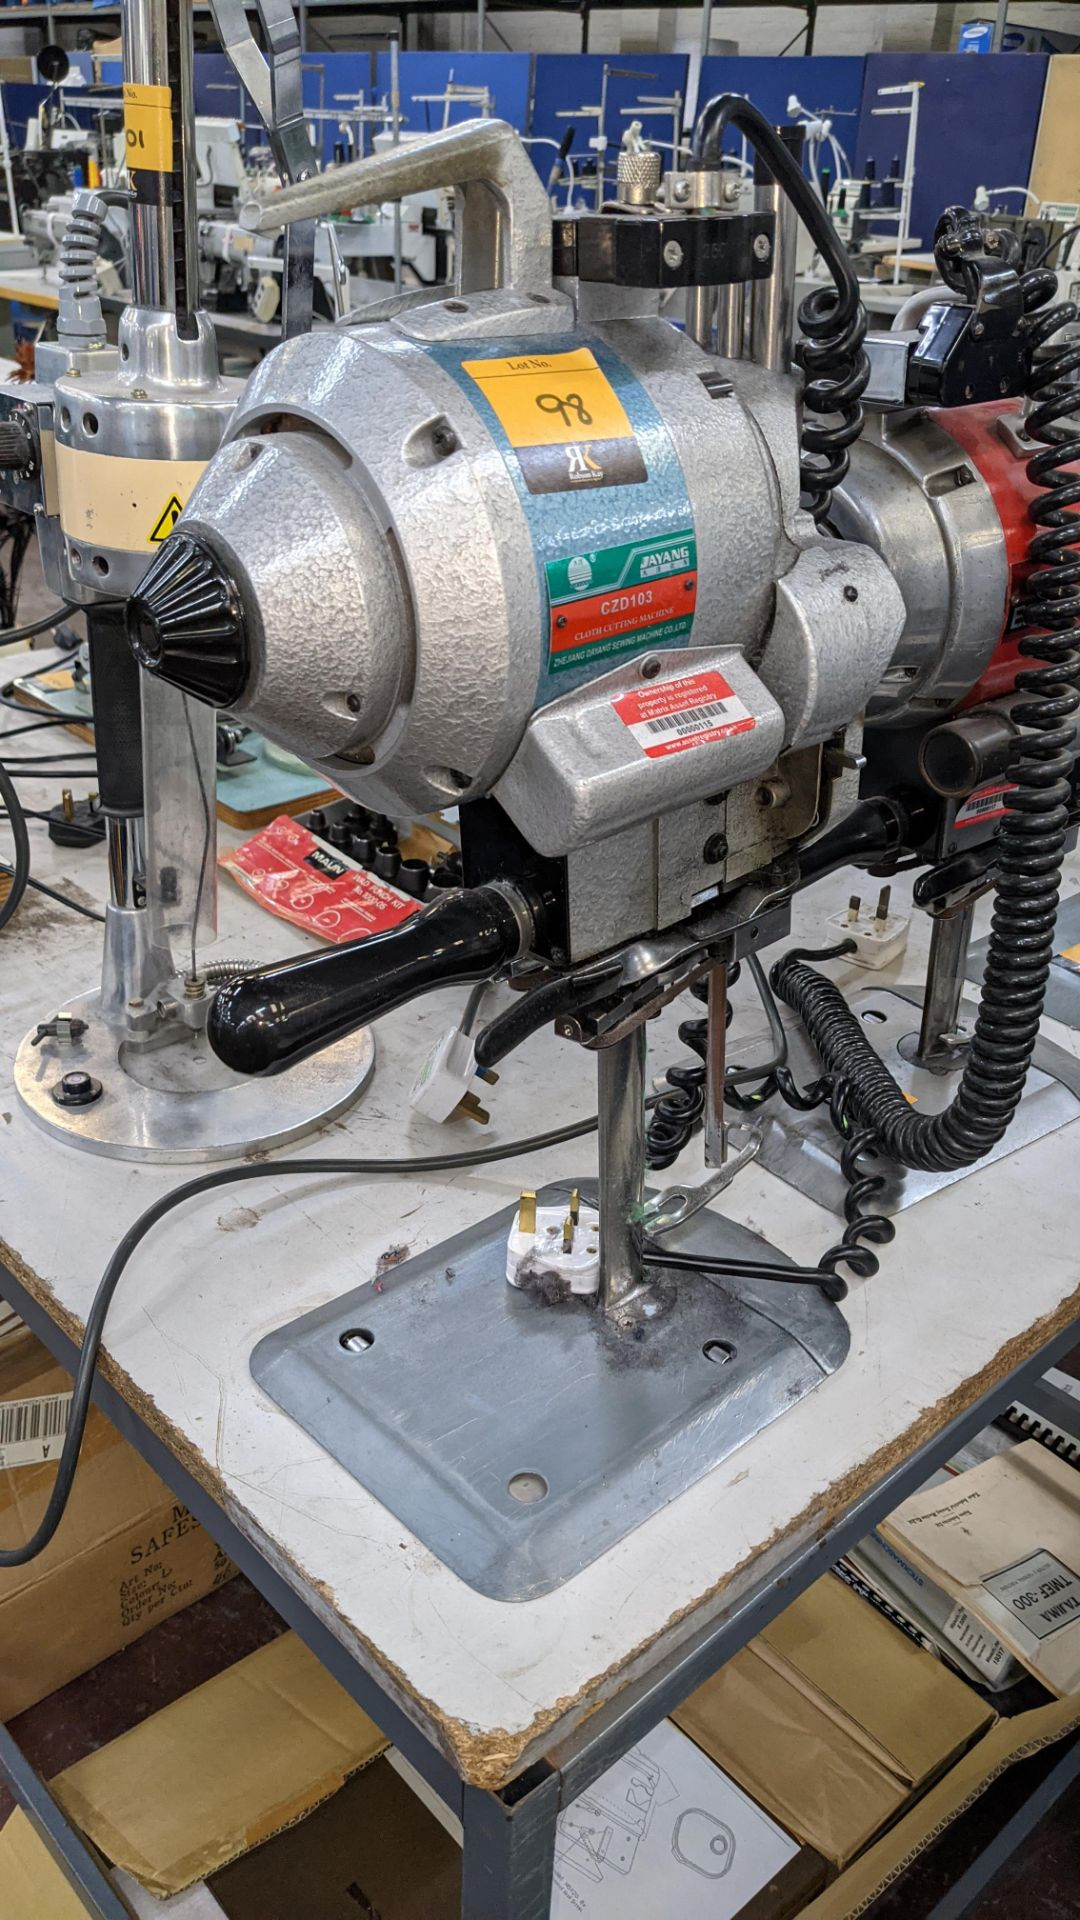 Ayang model CZD103 electric cutter - Image 2 of 6